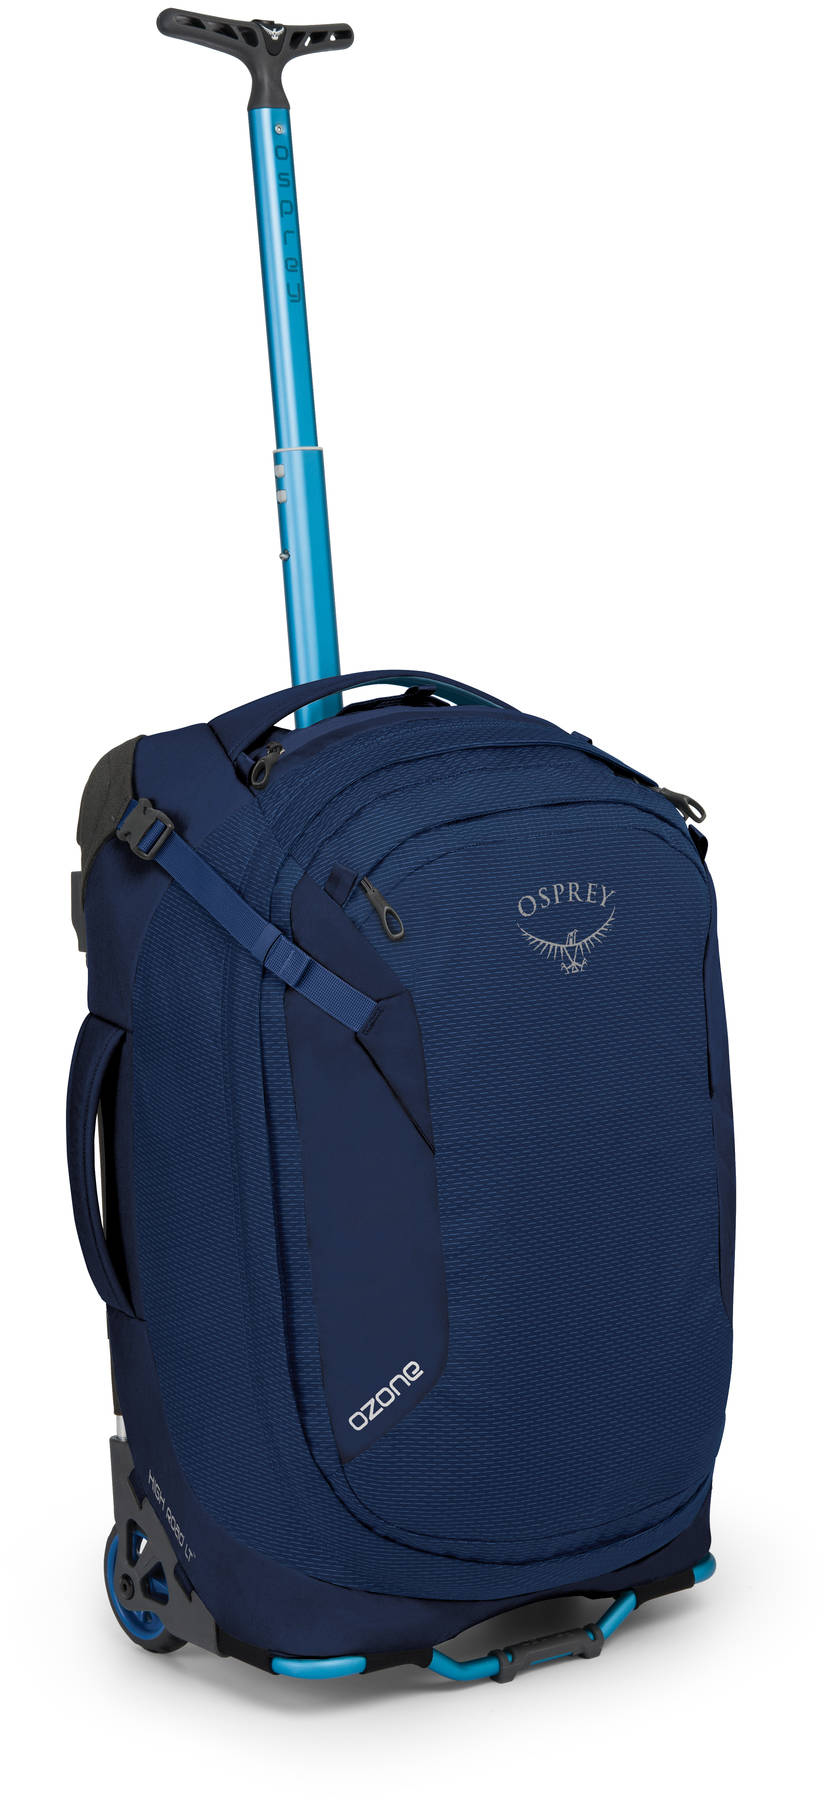 Osprey Ozone 42 Travel Bag | Travel bags